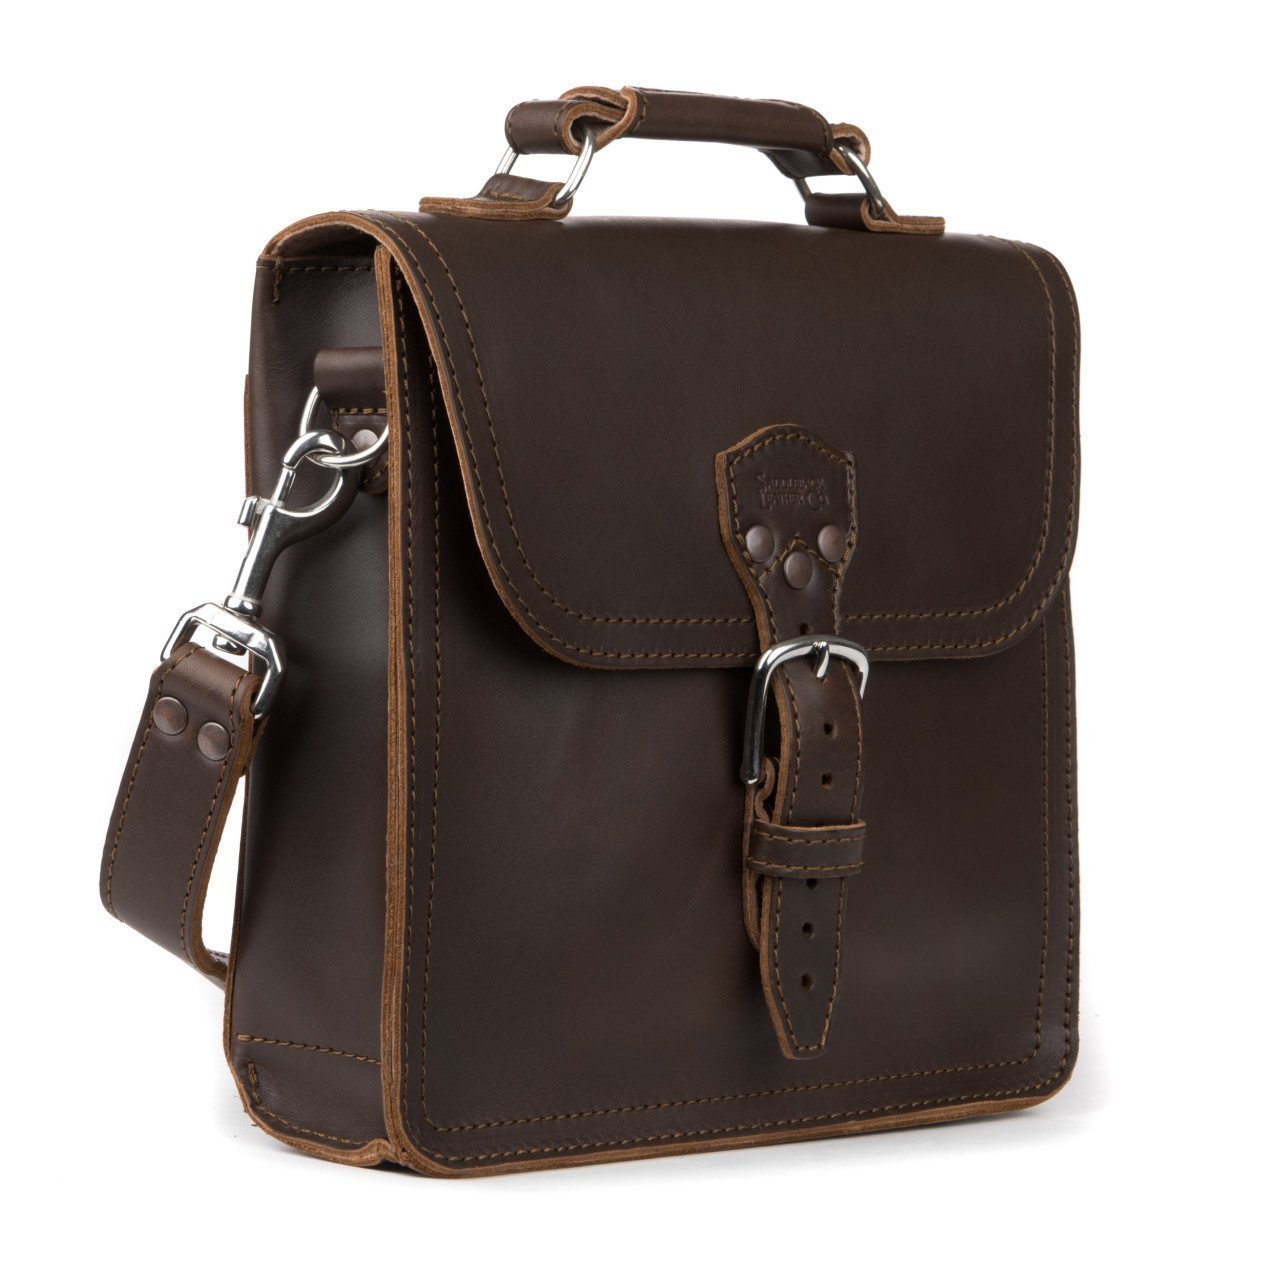 Saddleback Leather Co. Indiana Messenger Gear Bag Full Grain Leather Slim Satchel for Men Includes 100 Year Warranty.